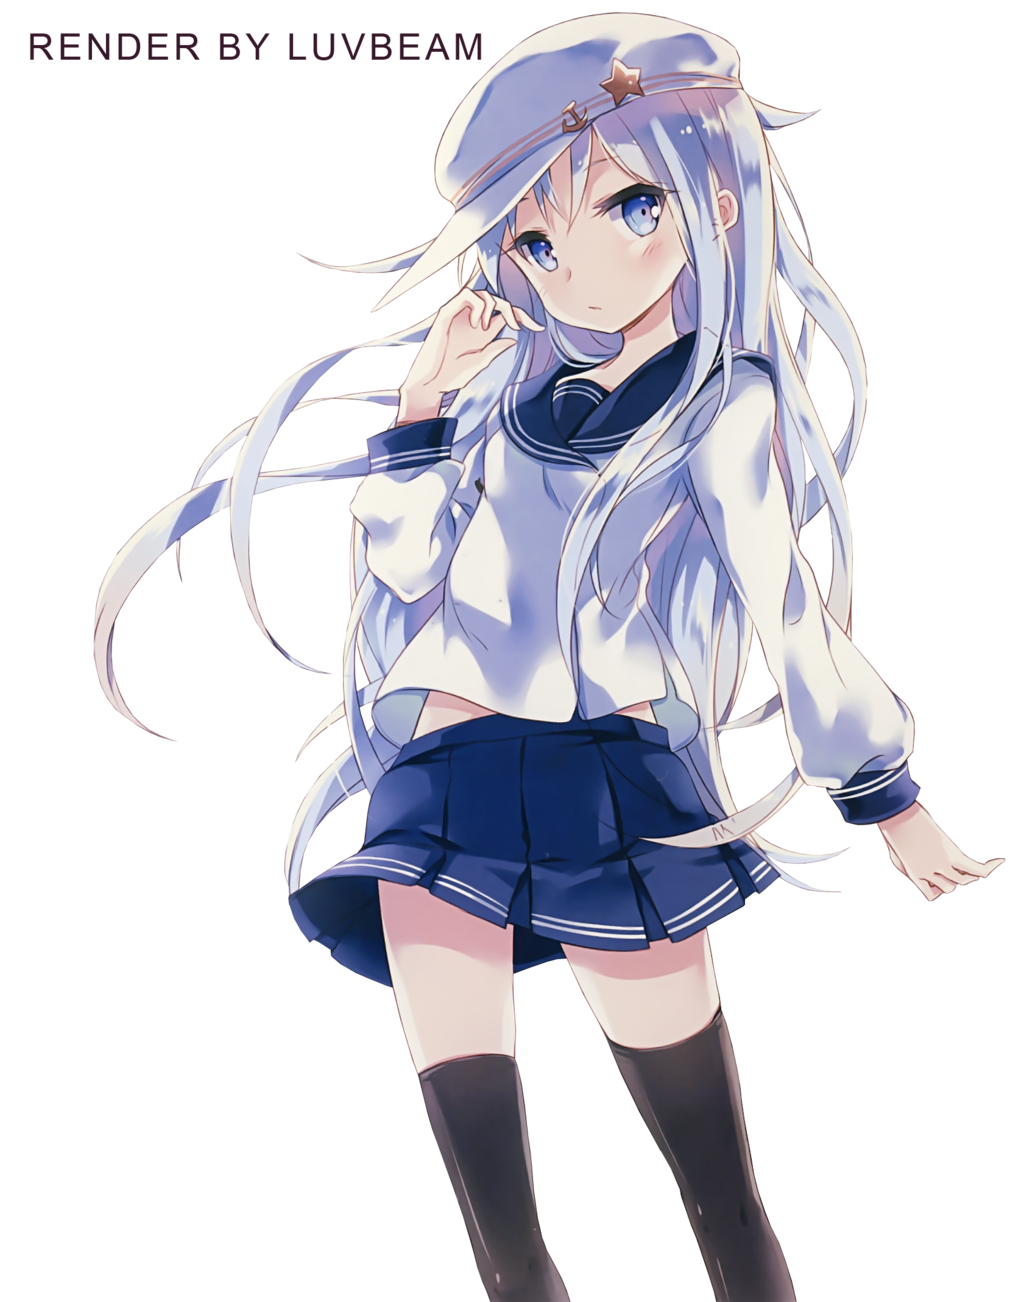 Anime Girl Transparent Picture 15 12200